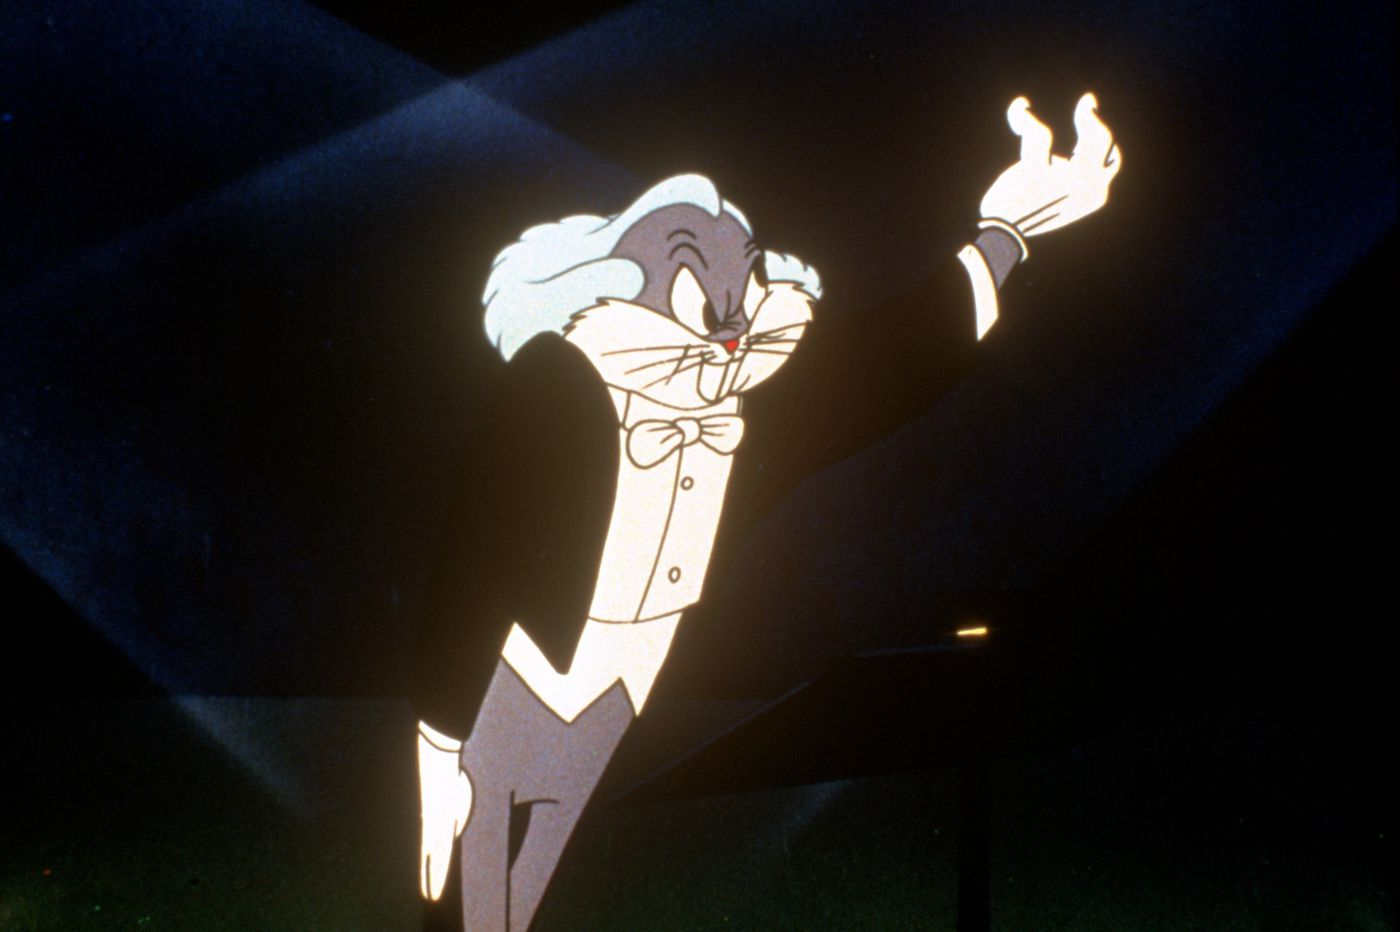 A Philadelphia Orchestra guest conductor most unusual: Bugs Bunny